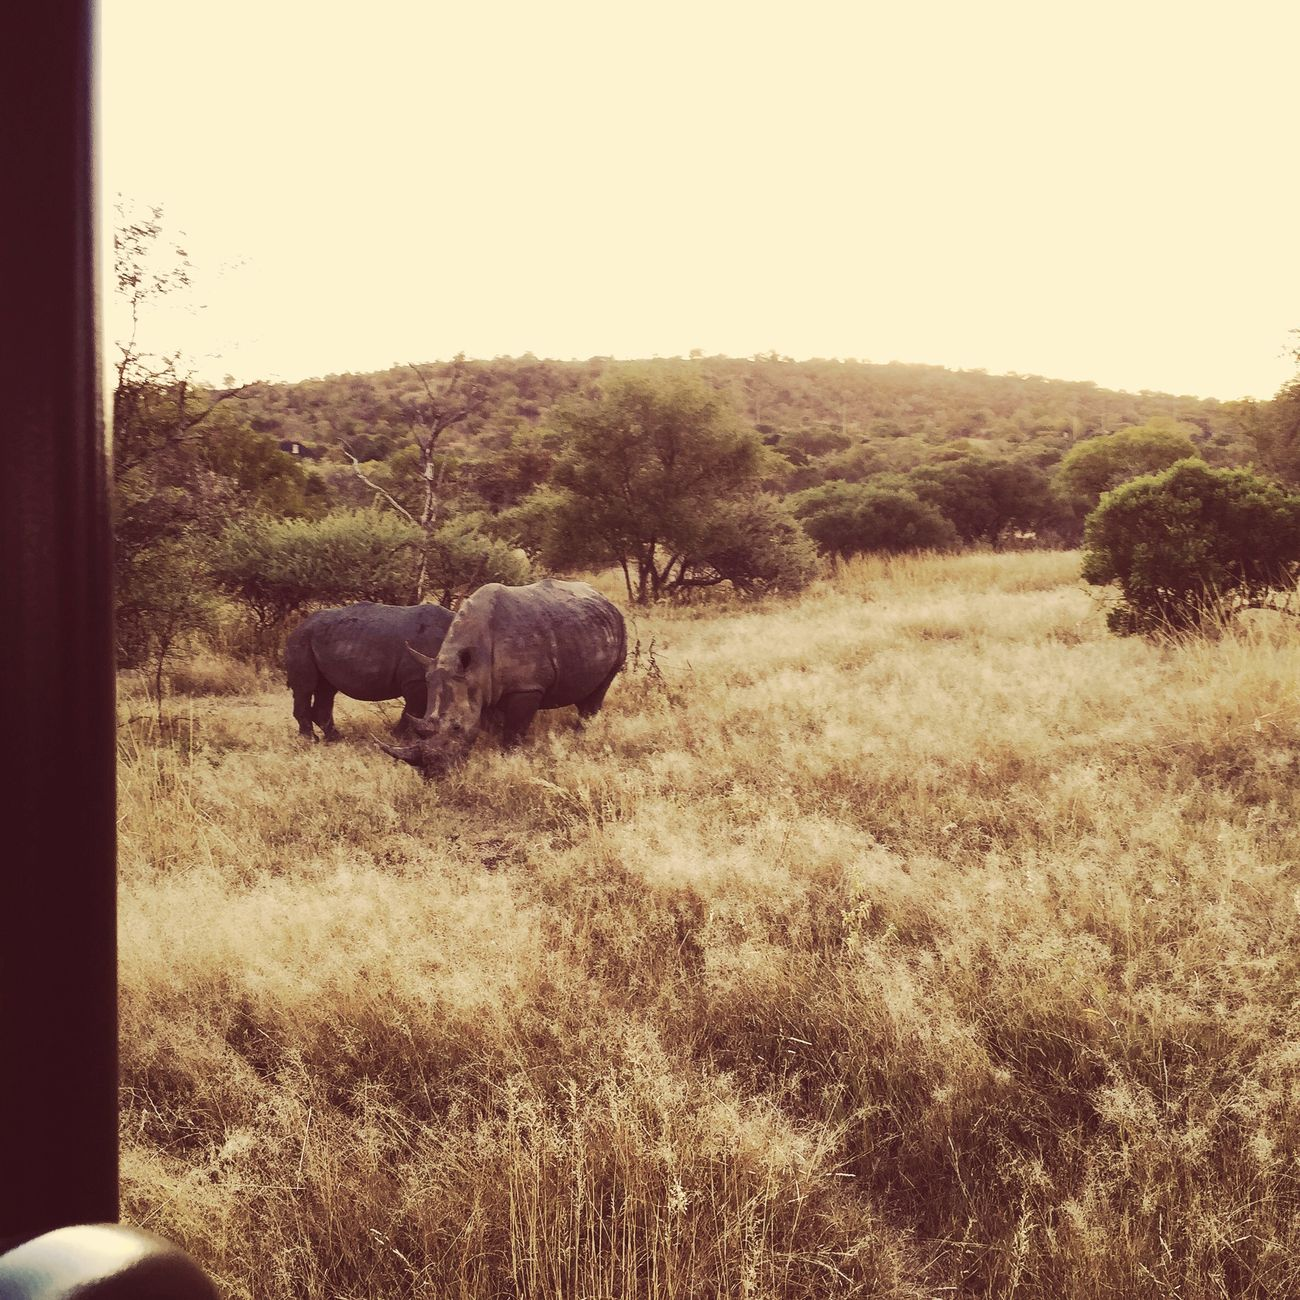 South Africa Africa Safari Rinhoceros Amazing View Iphonography Amazing_captures IPhoneography Beautiful Southafrica